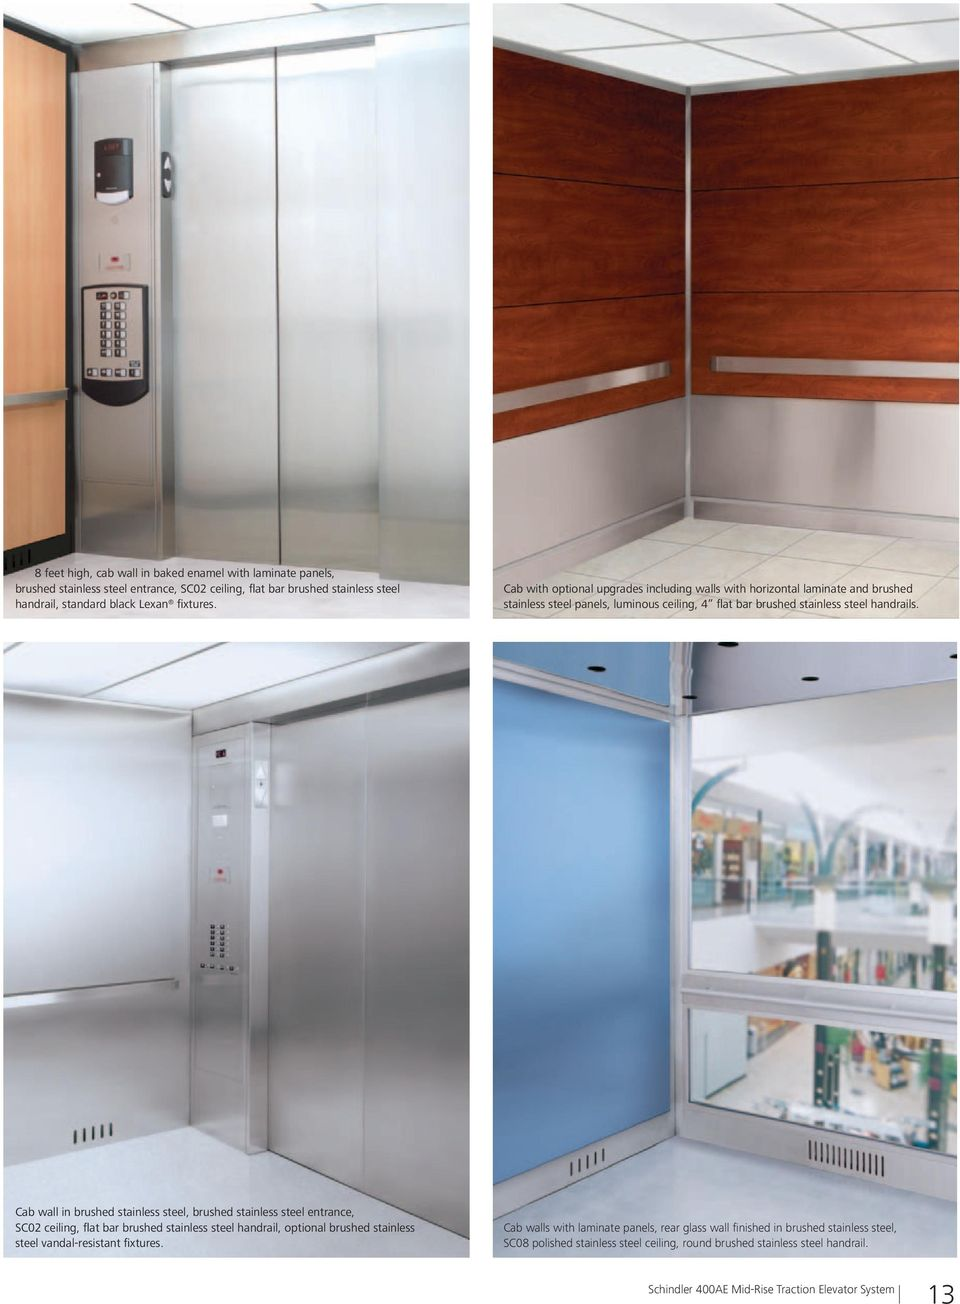 Schindler 400ae Machine Room Less Elevator Dynamic Durable Wiring Diagram Cab With Optional Upgrades Including Walls Horizontal Laminate And Brushed Stainless Steel Panels Luminous